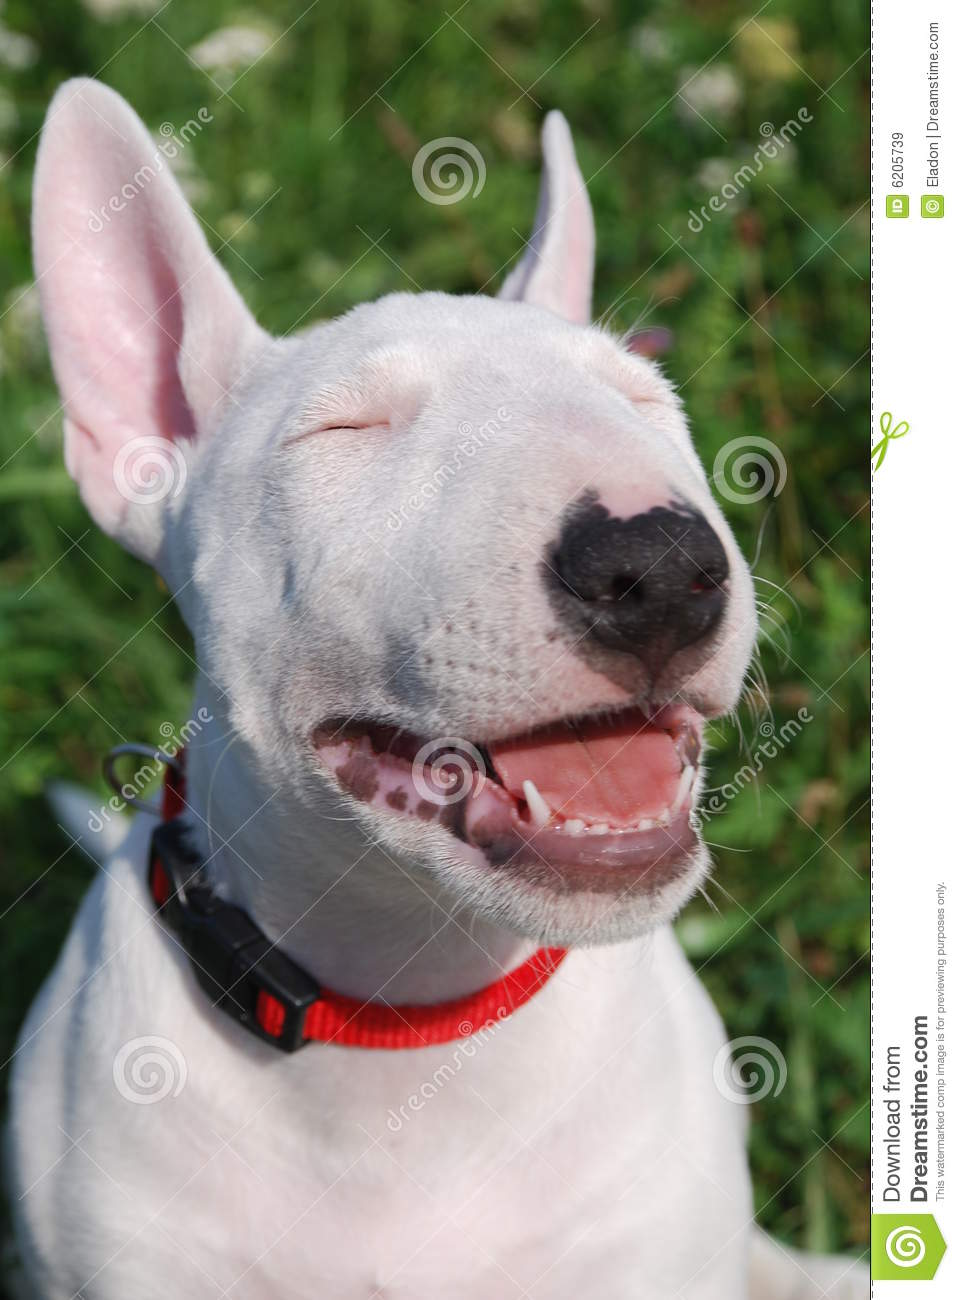 Bull Terrier Puppy Royalty Free Stock Images - Image: 6205739